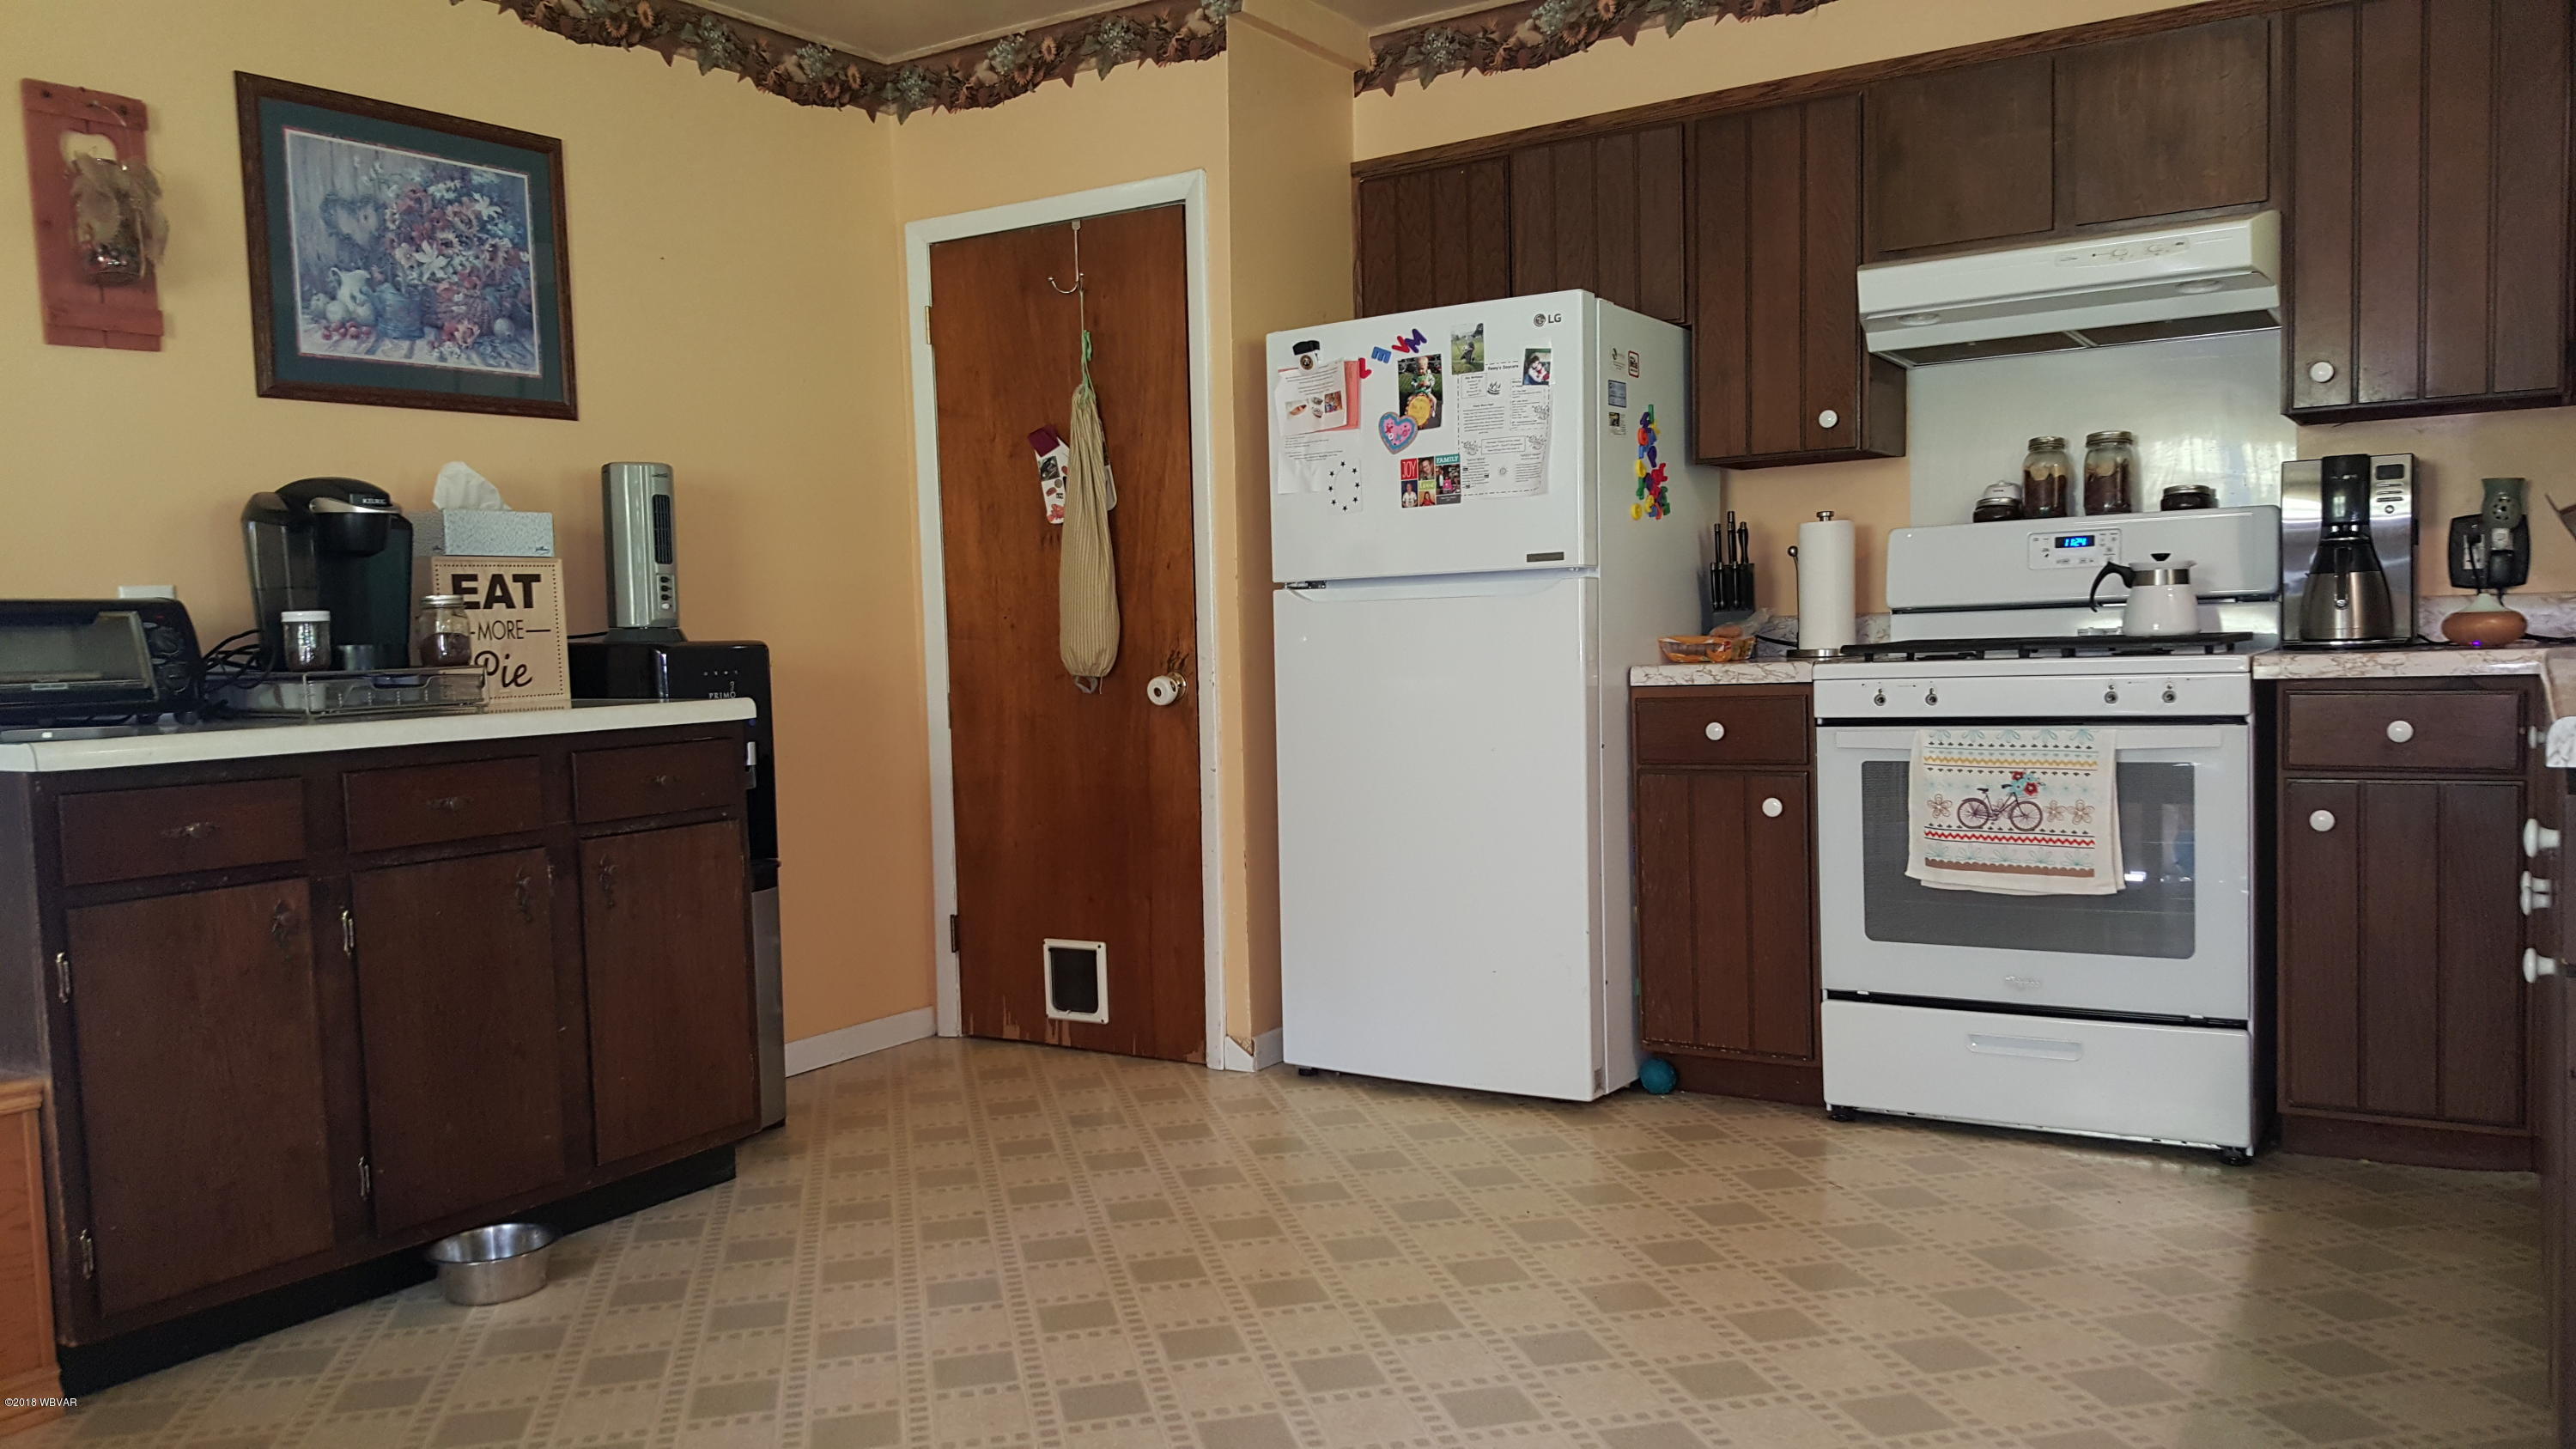 1365 BUTTON HILL ROAD,Tioga,PA 16946,1 Bedroom Bedrooms,1 BathroomBathrooms,Residential,BUTTON HILL,WB-85998